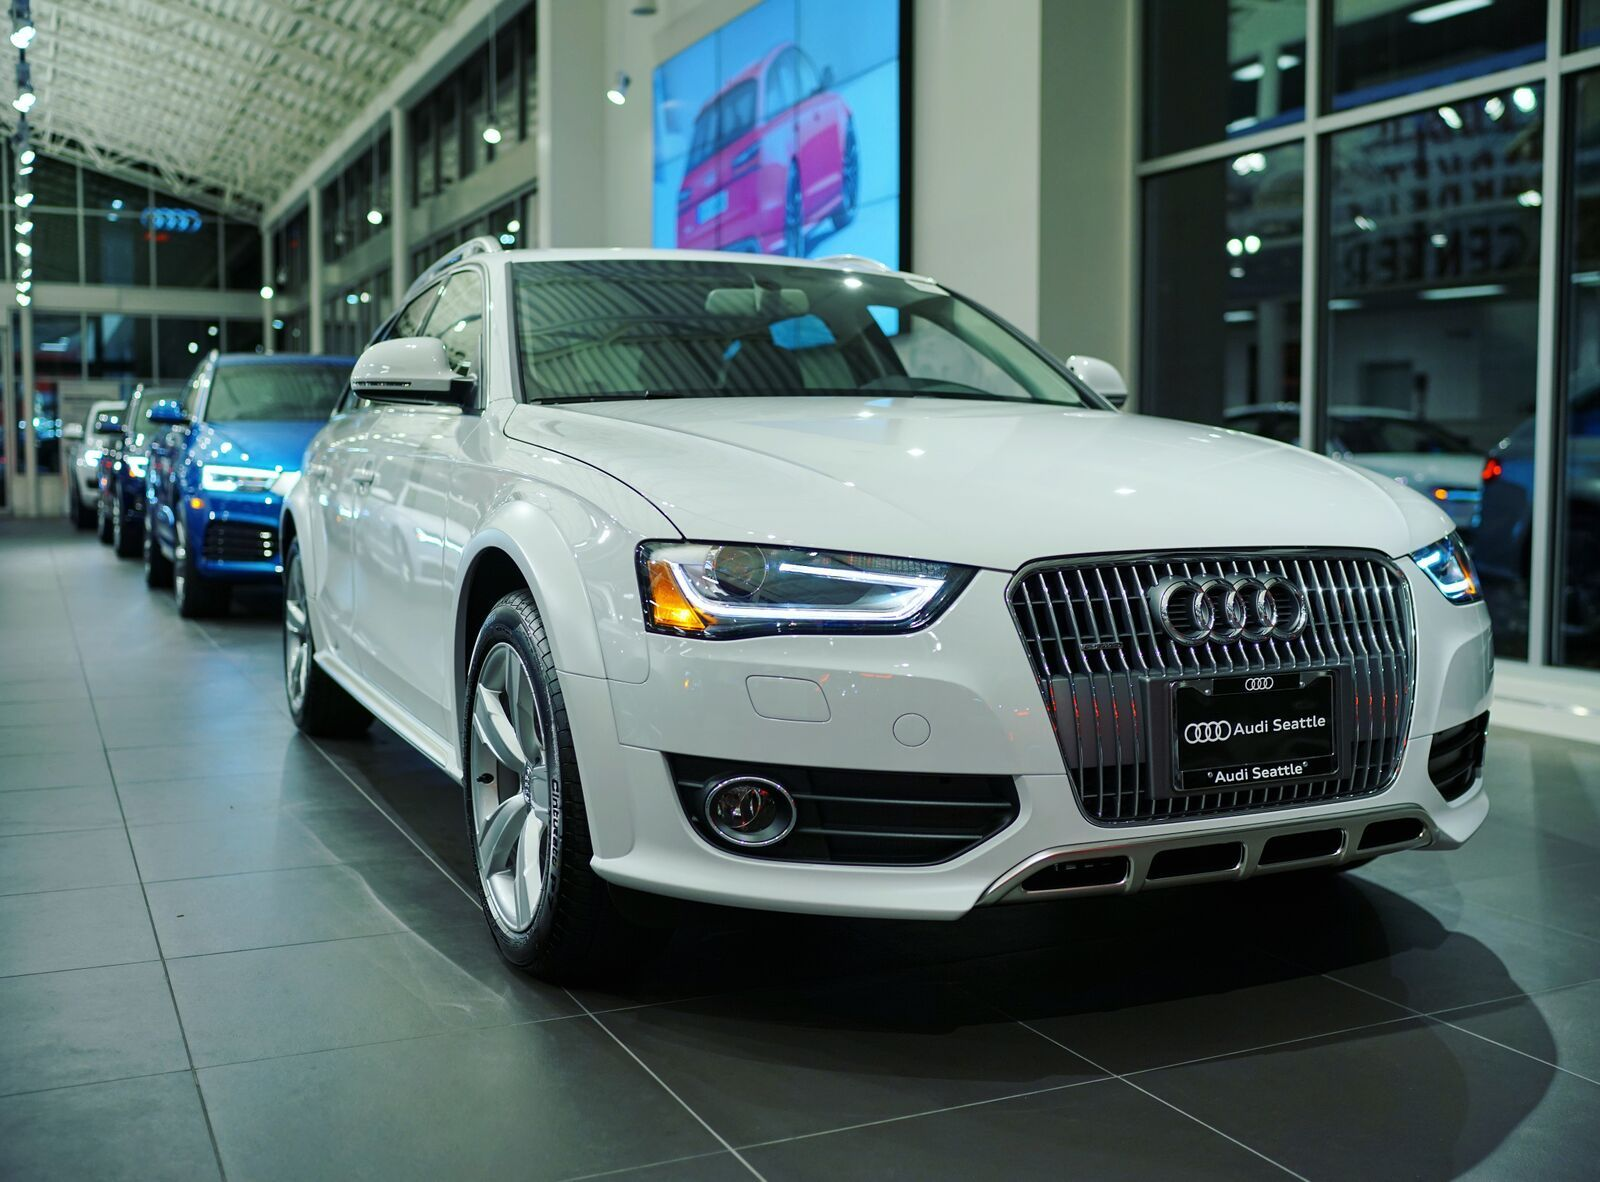 Glacier White Audi Allroad Audi Seattle U District Seattle - Audi dealership washington